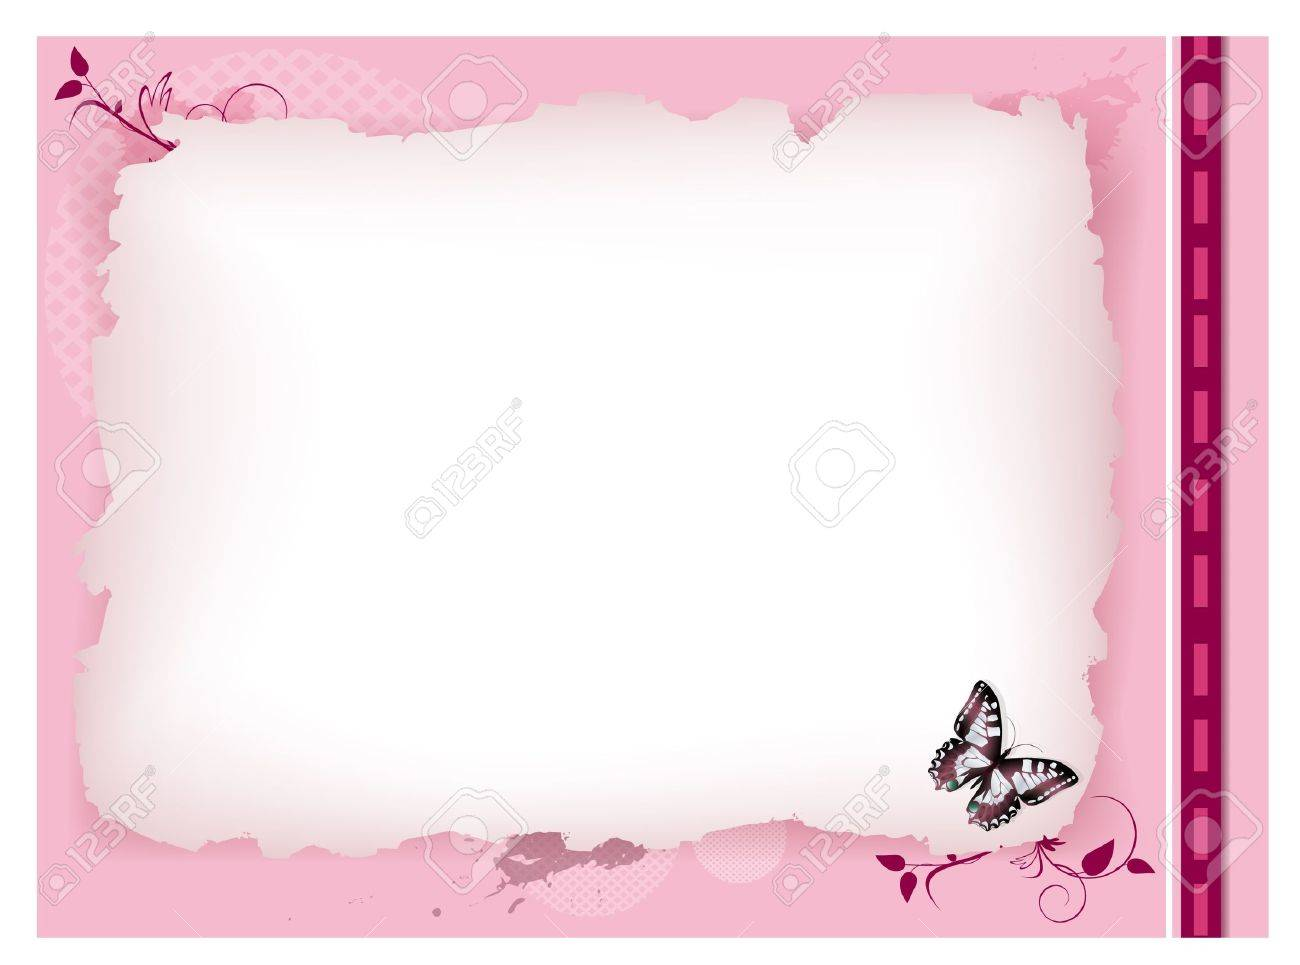 decorative vintage invitation card with floral elements and copyspace Stock Vector - 10043043